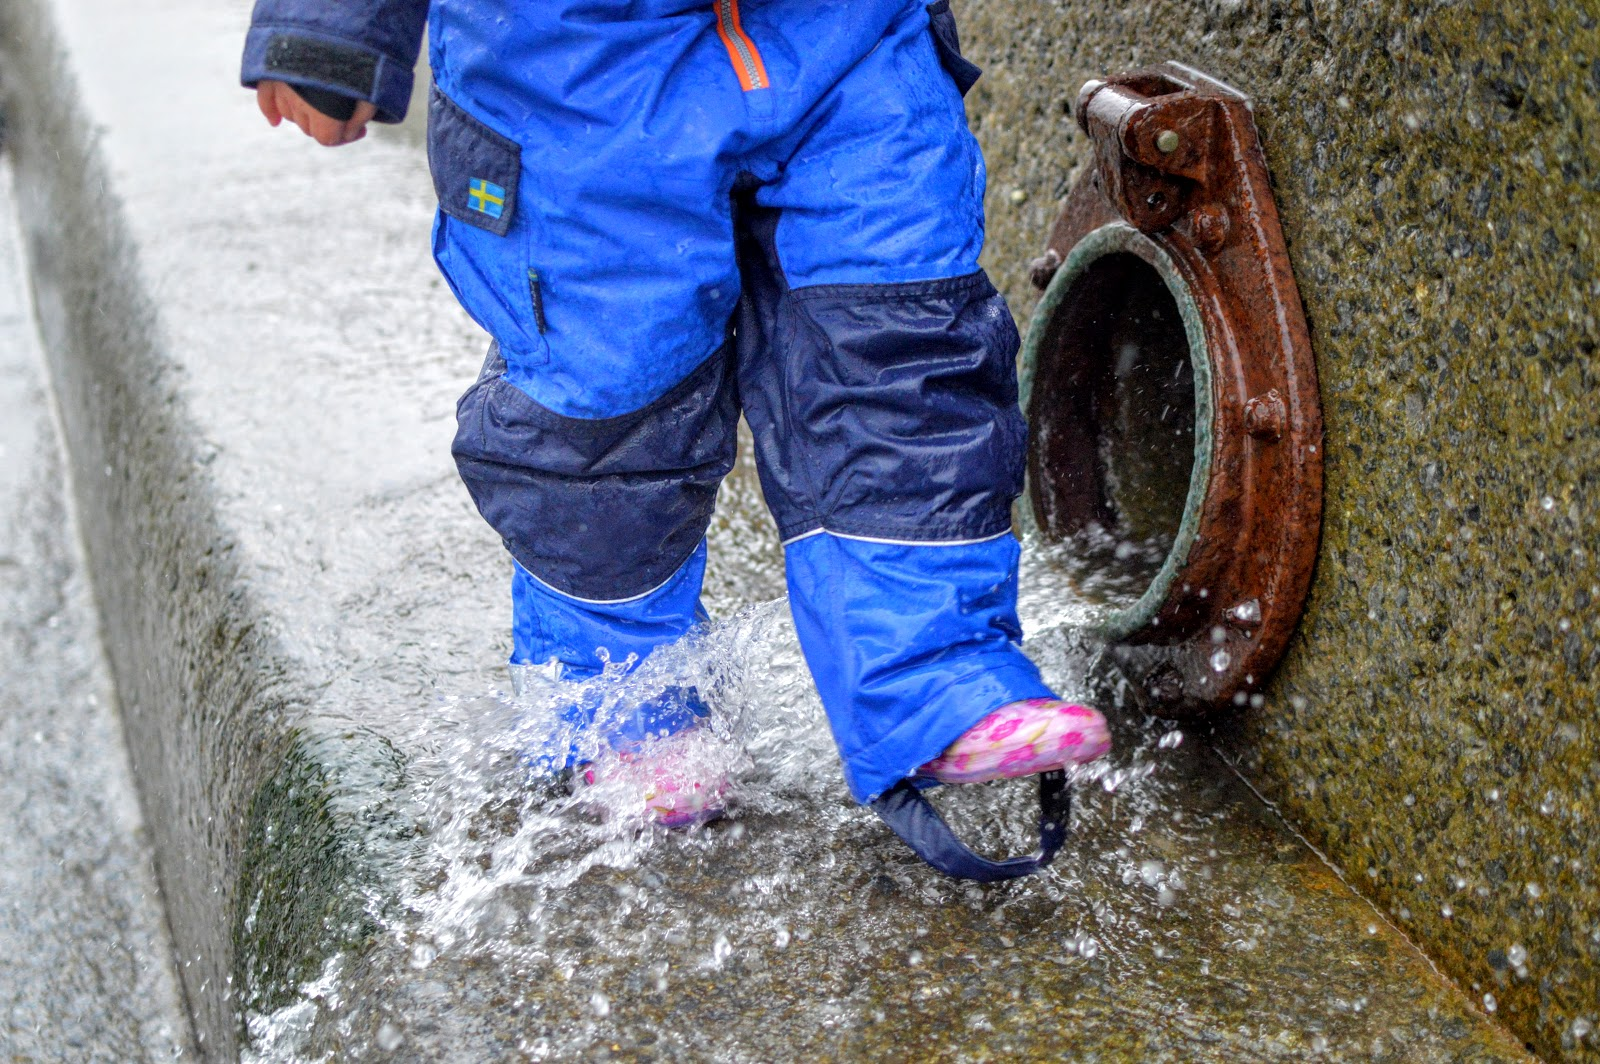 Wellies splashing in water